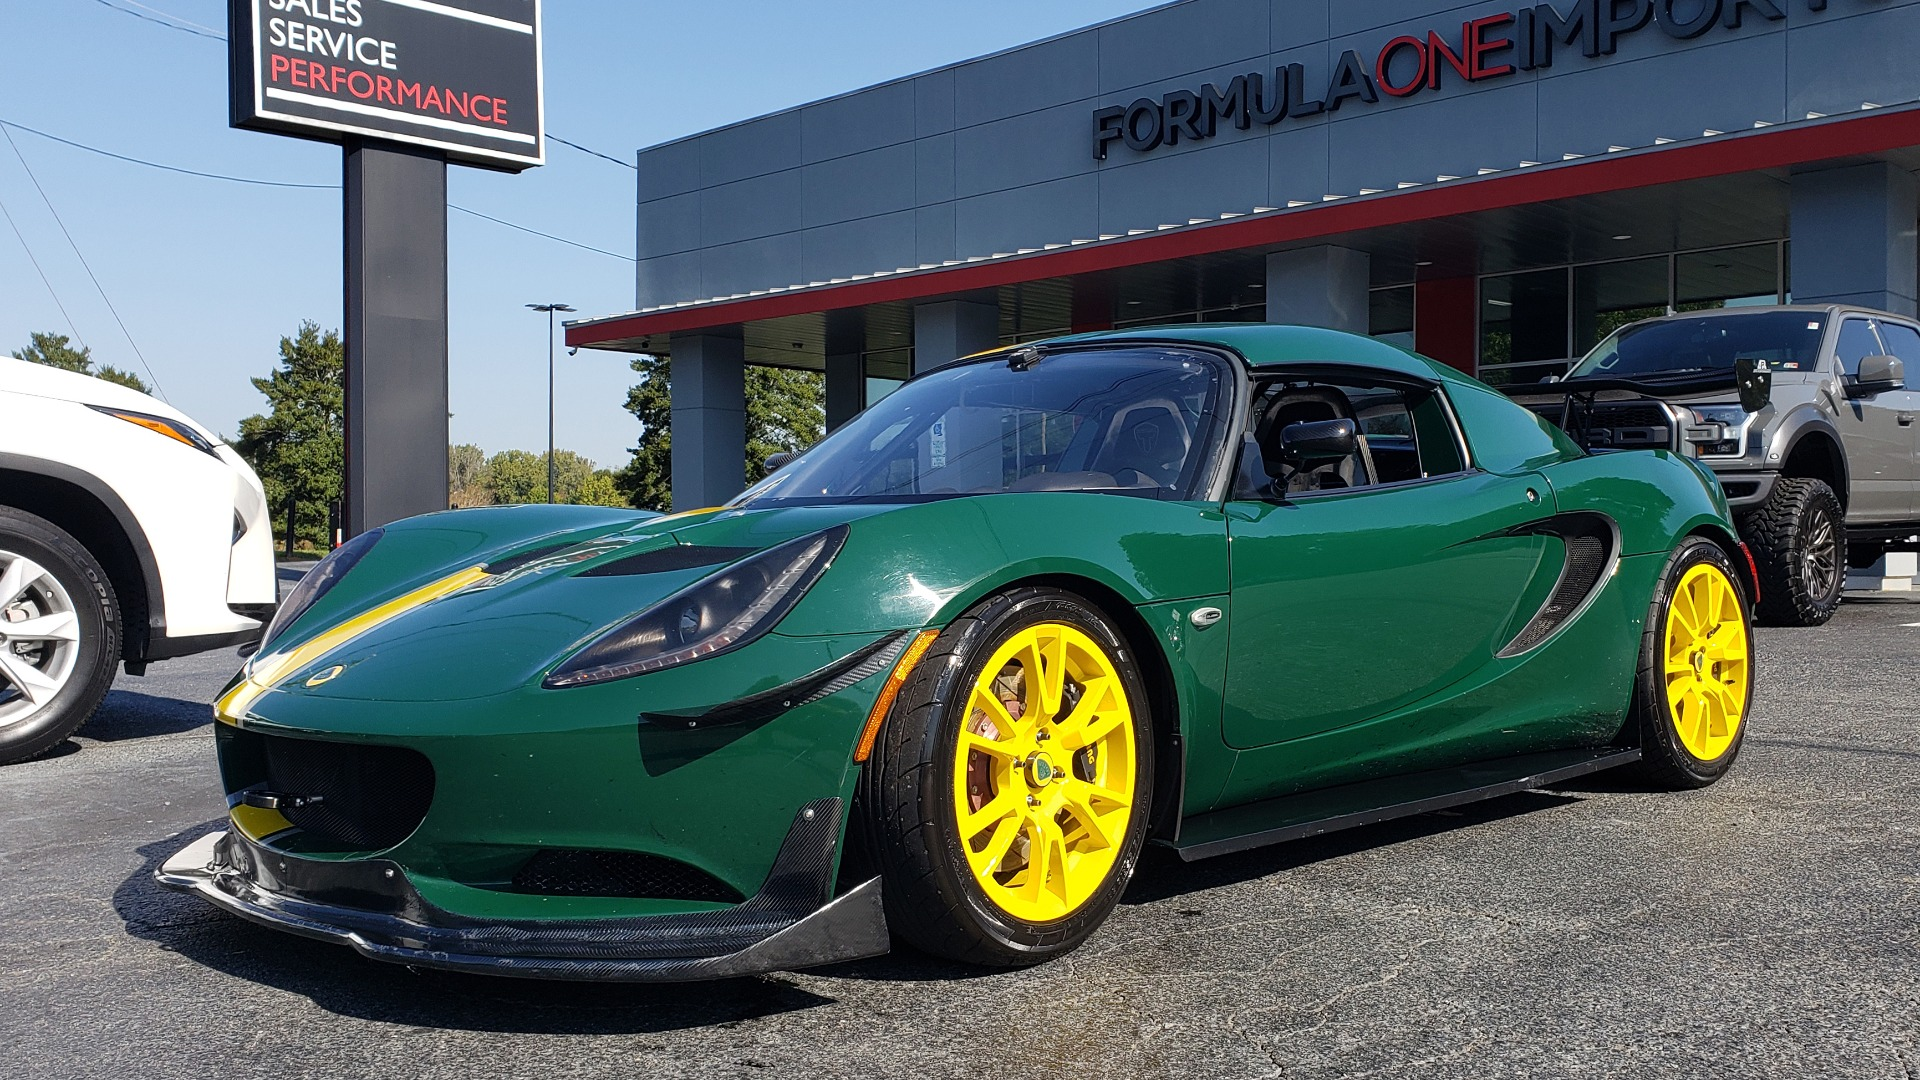 Used 2011 Lotus ELISE SC RACE CAR / UP TO DATE / READY TO RACE W/3-SETS WHEELS & TIRES for sale $51,999 at Formula Imports in Charlotte NC 28227 3